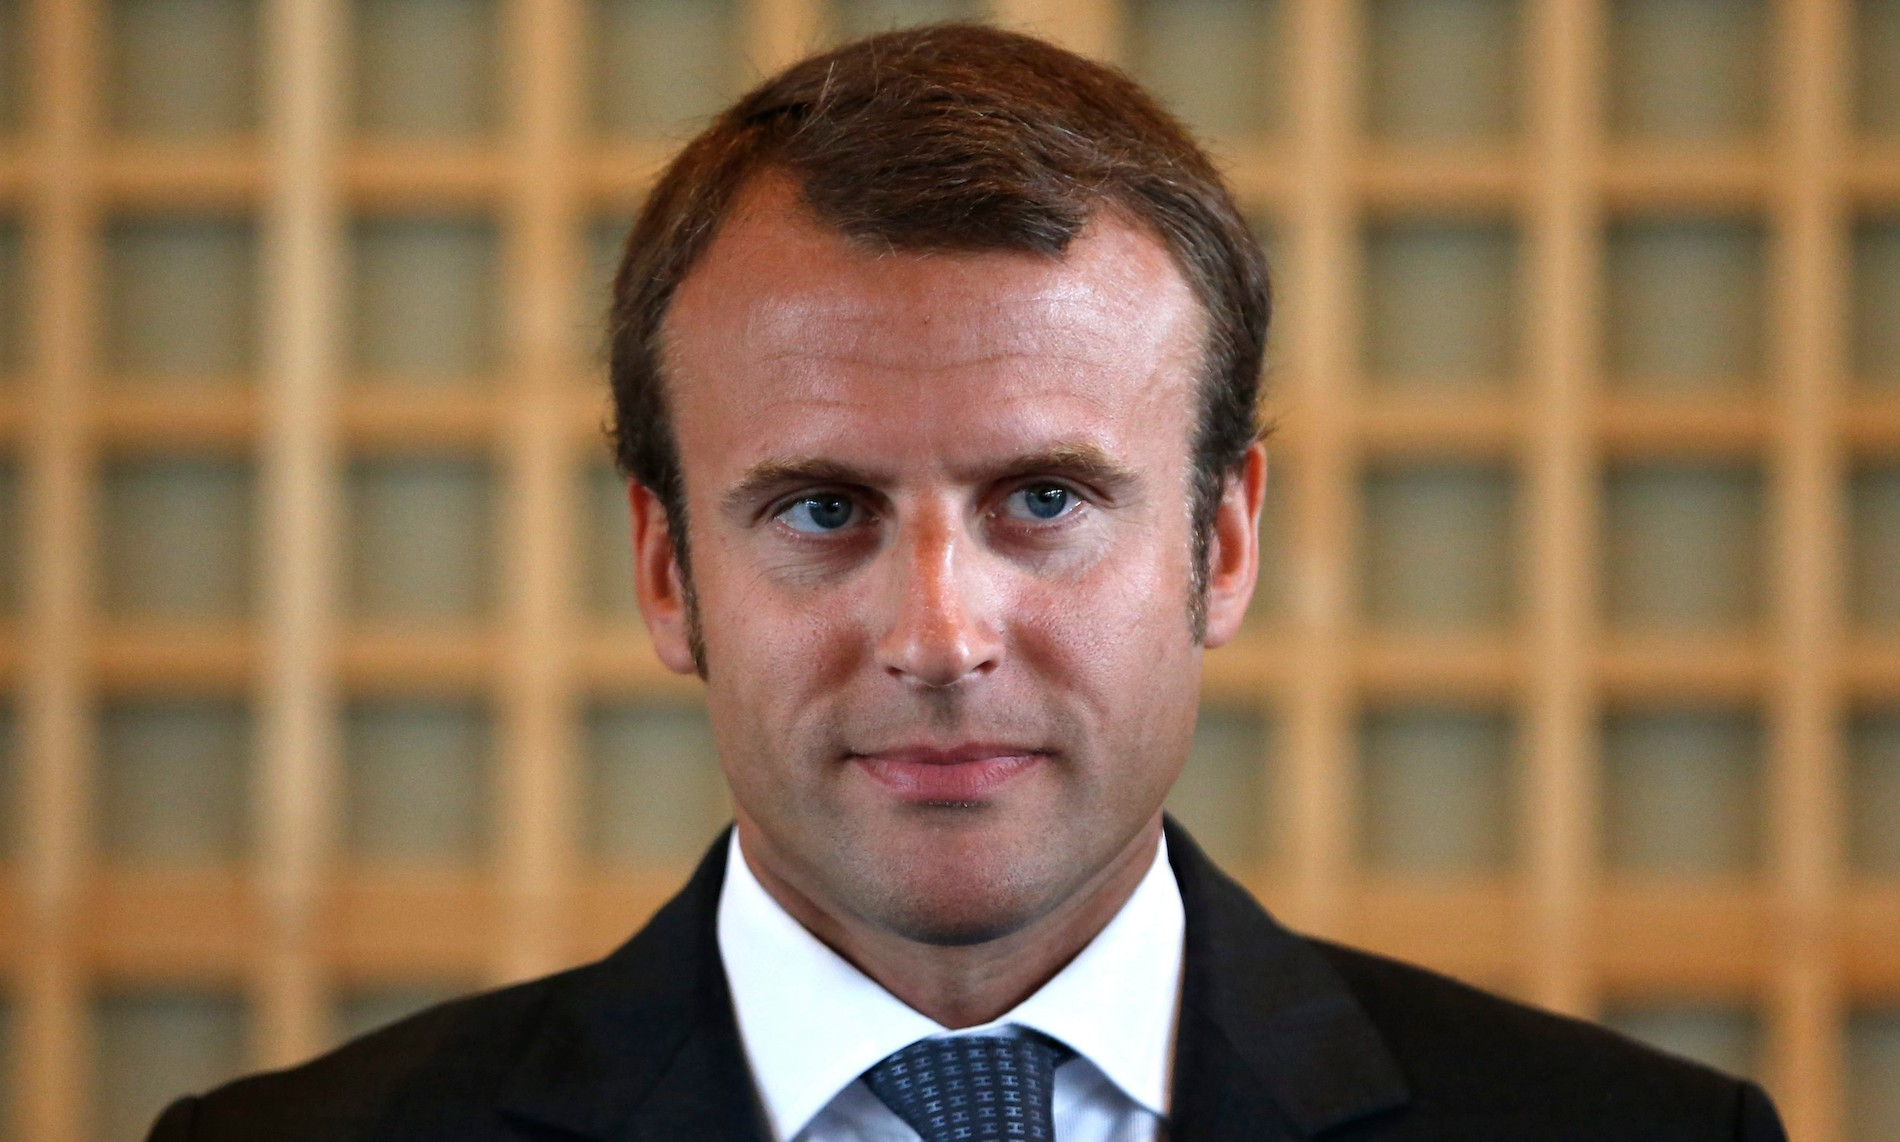 Copying Hillary Clinton, now France's Emmanuel Macron claims to be ...